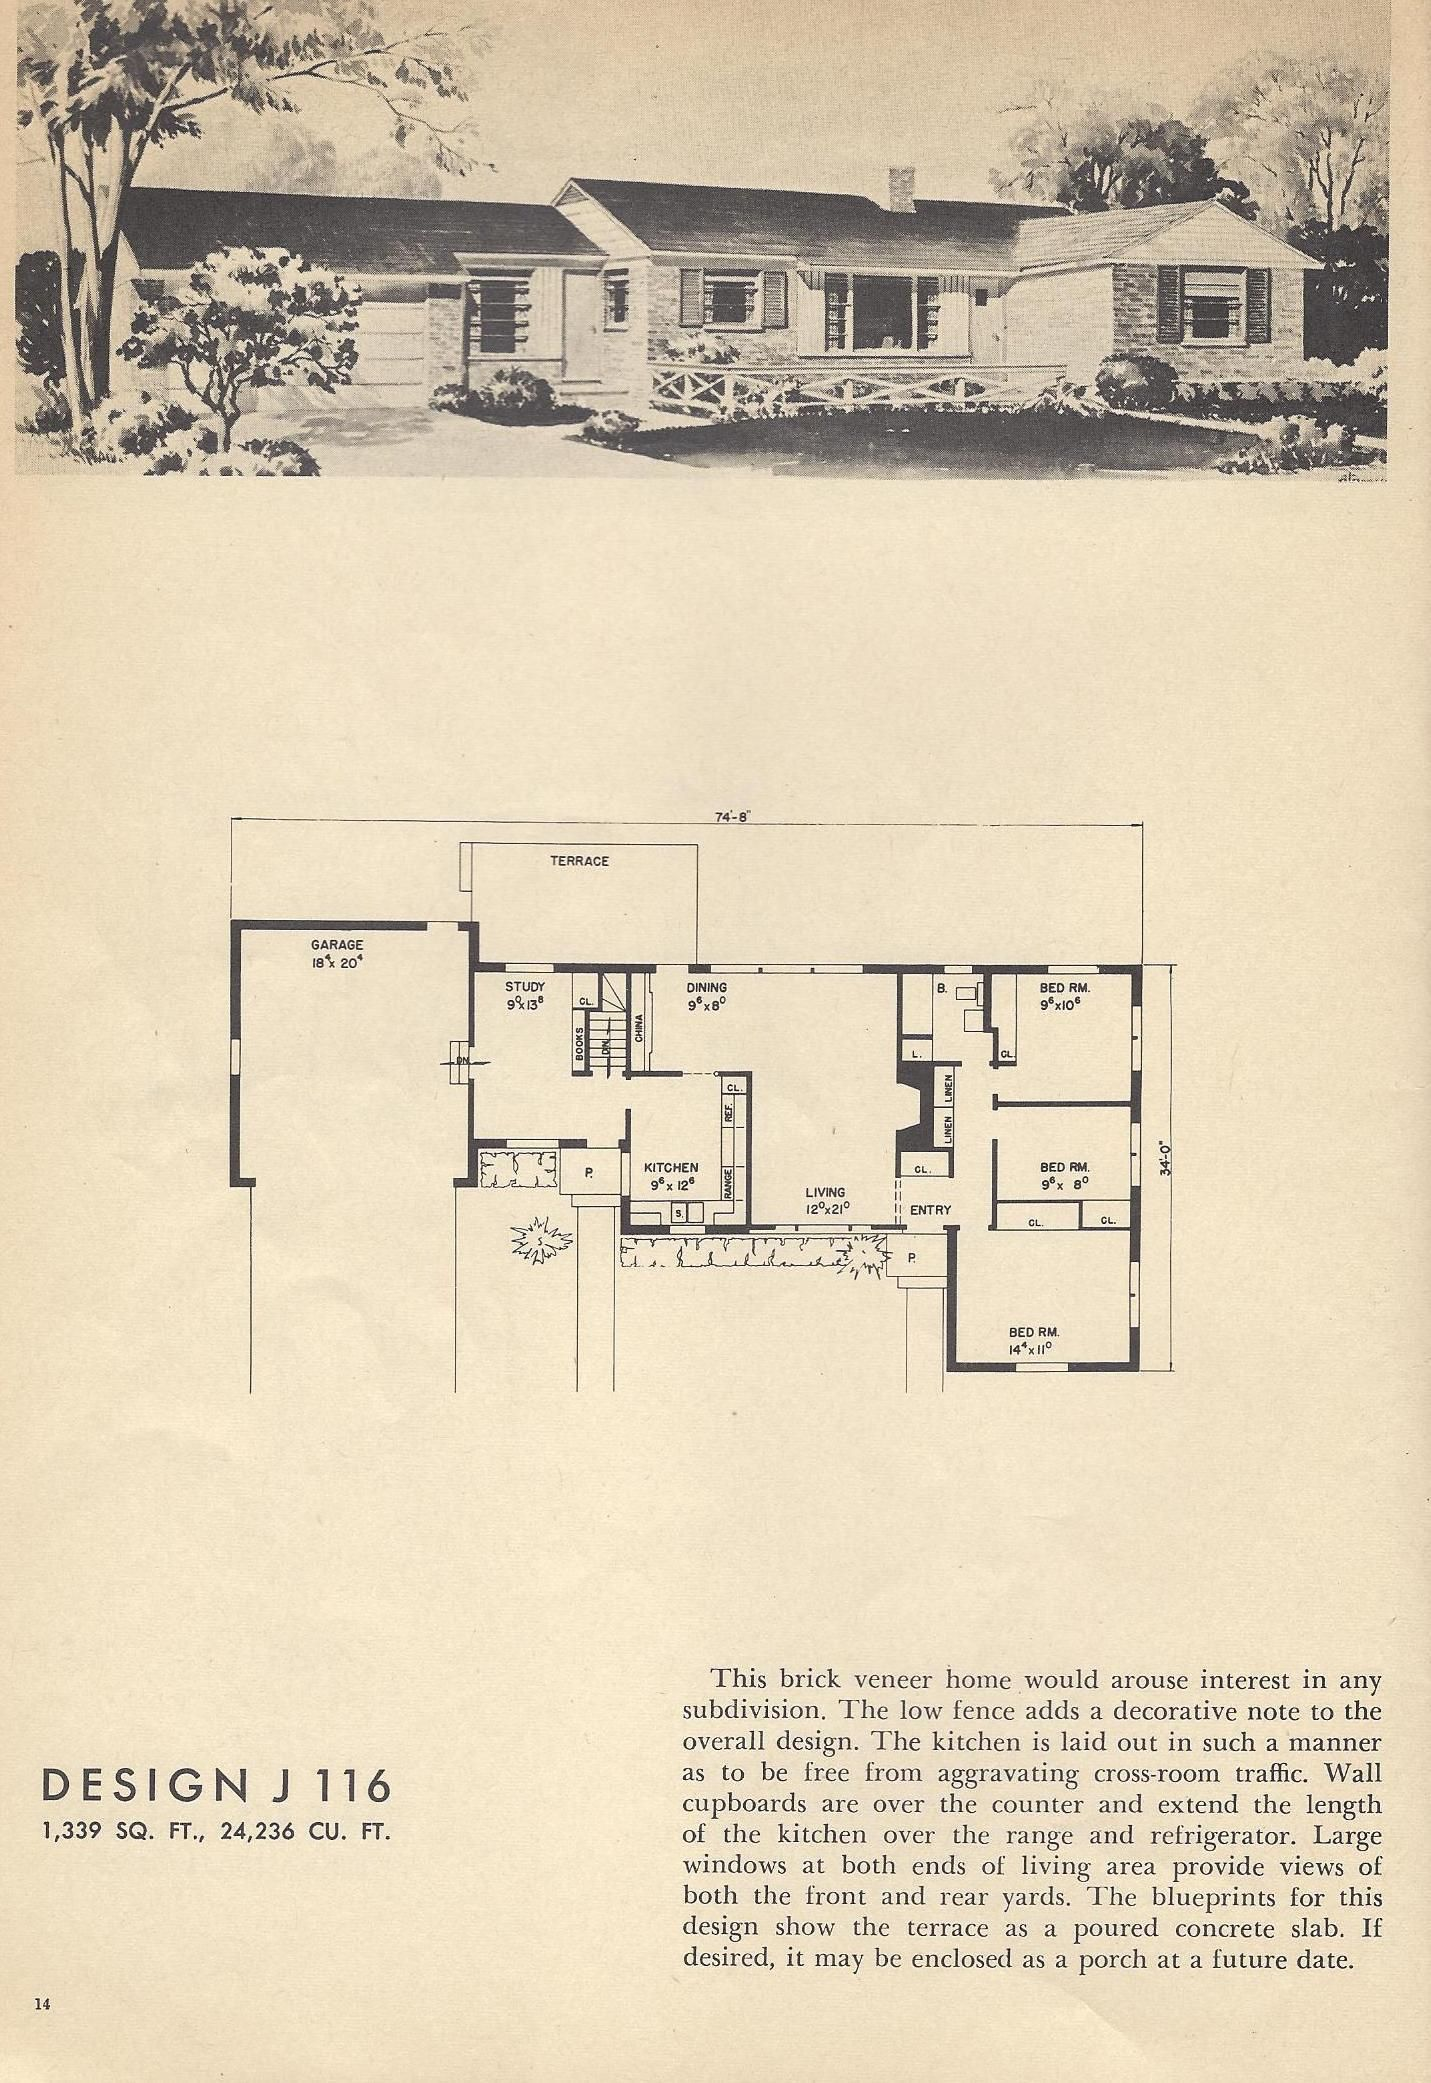 More Vintage House Plans Vintage House Plan Books Give An Insight Into The Style Of Mid Century Ho Vintage House Plans Architectural House Plans Vintage House